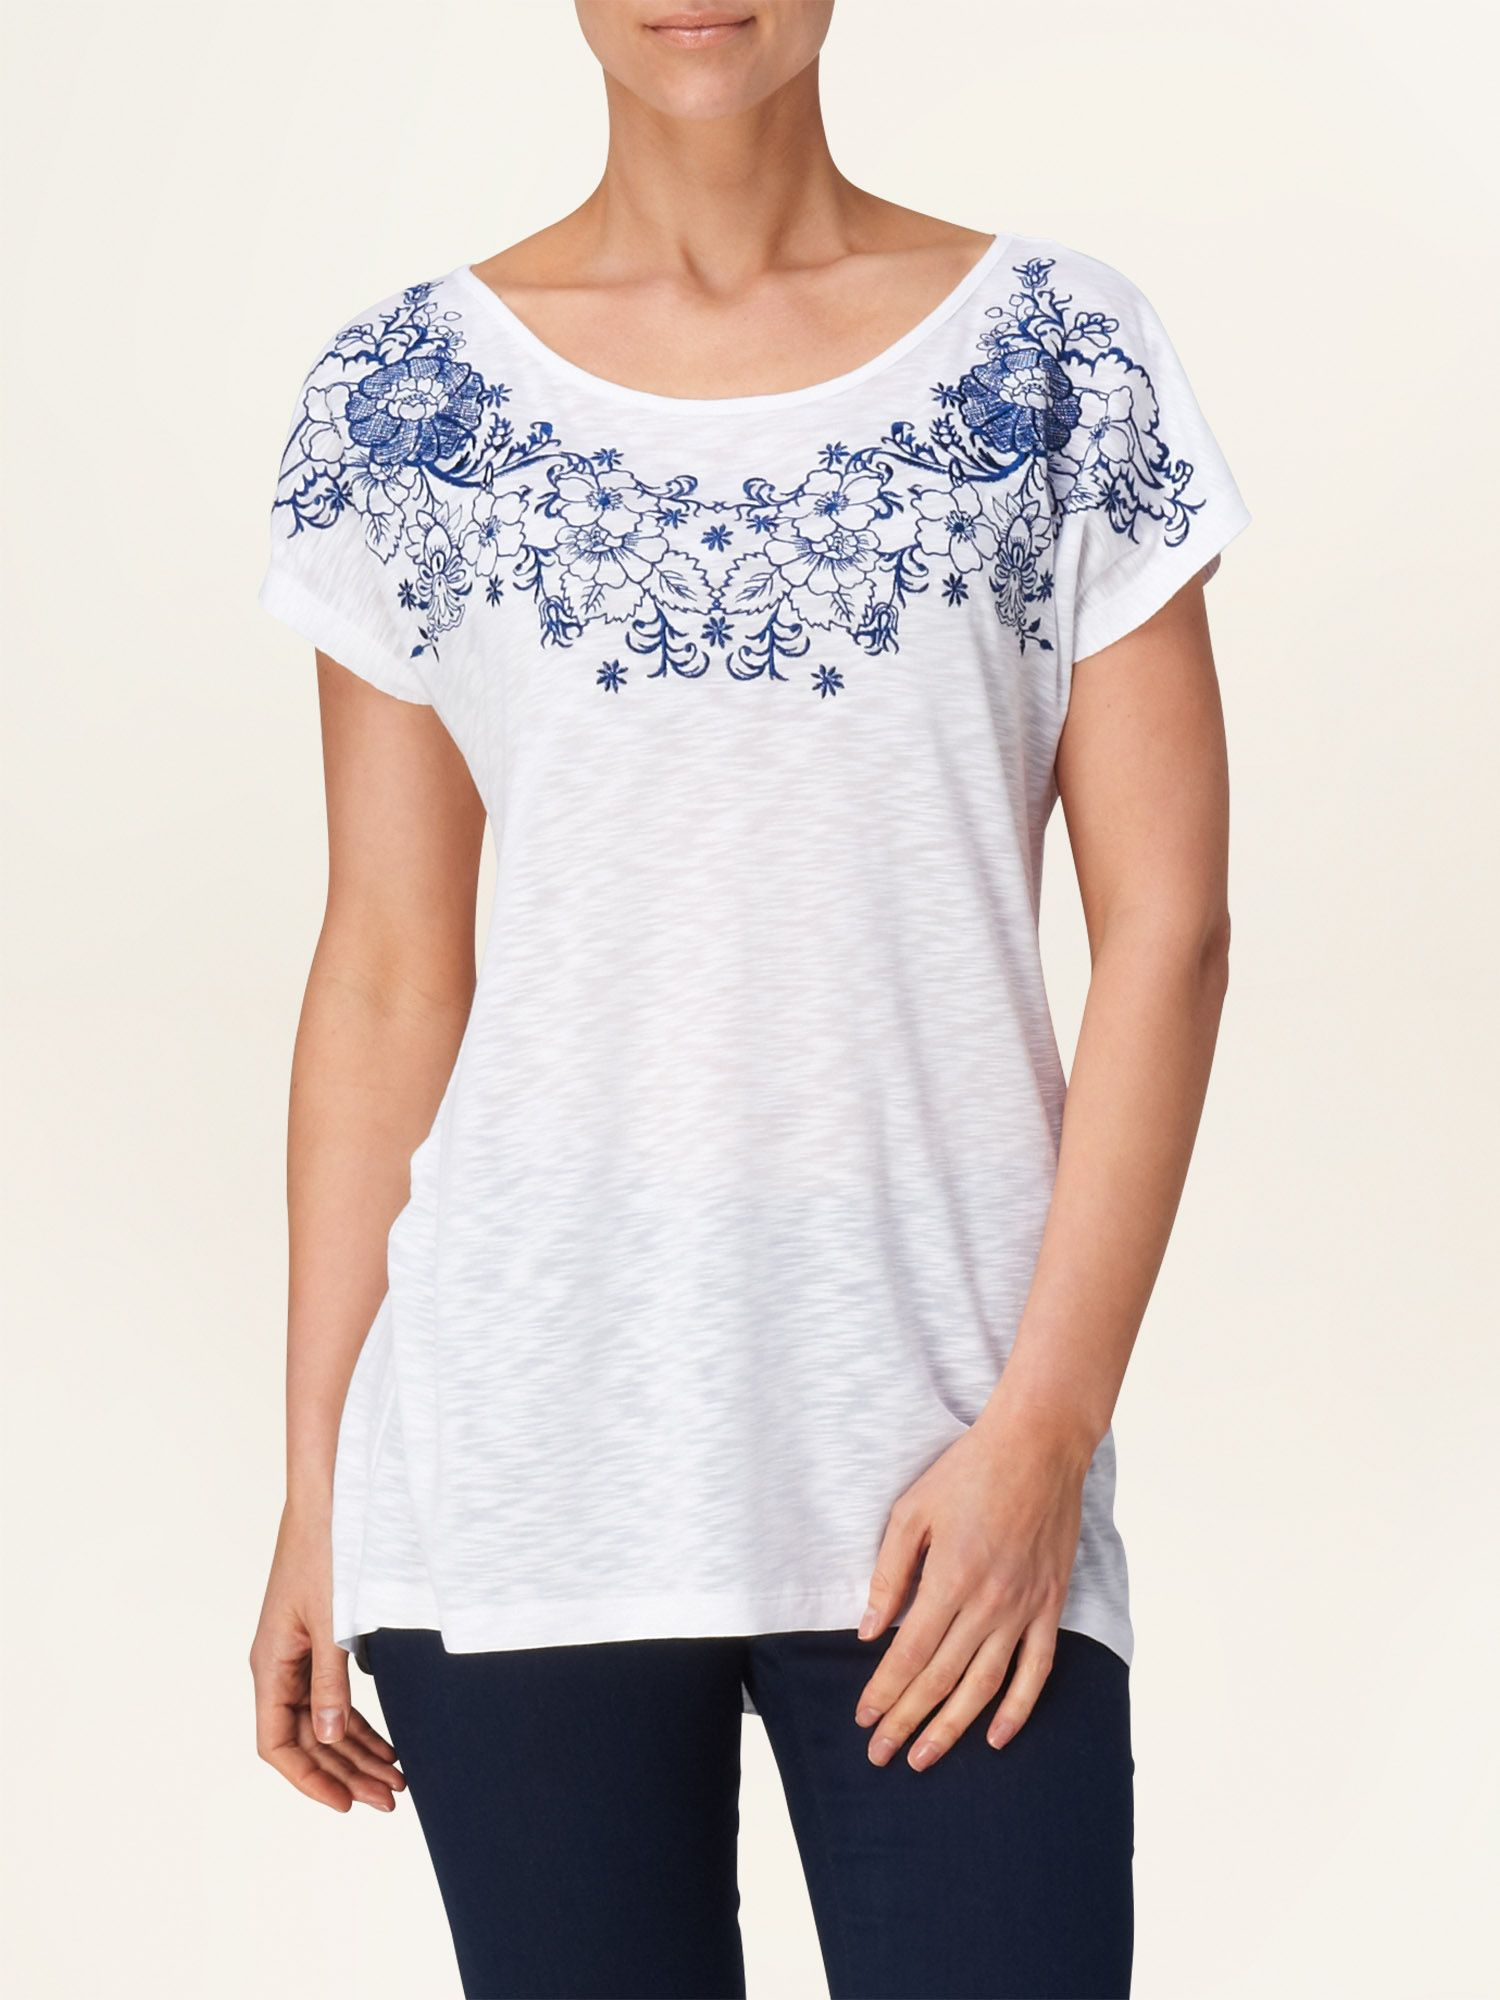 Maria embroidered t-shirt